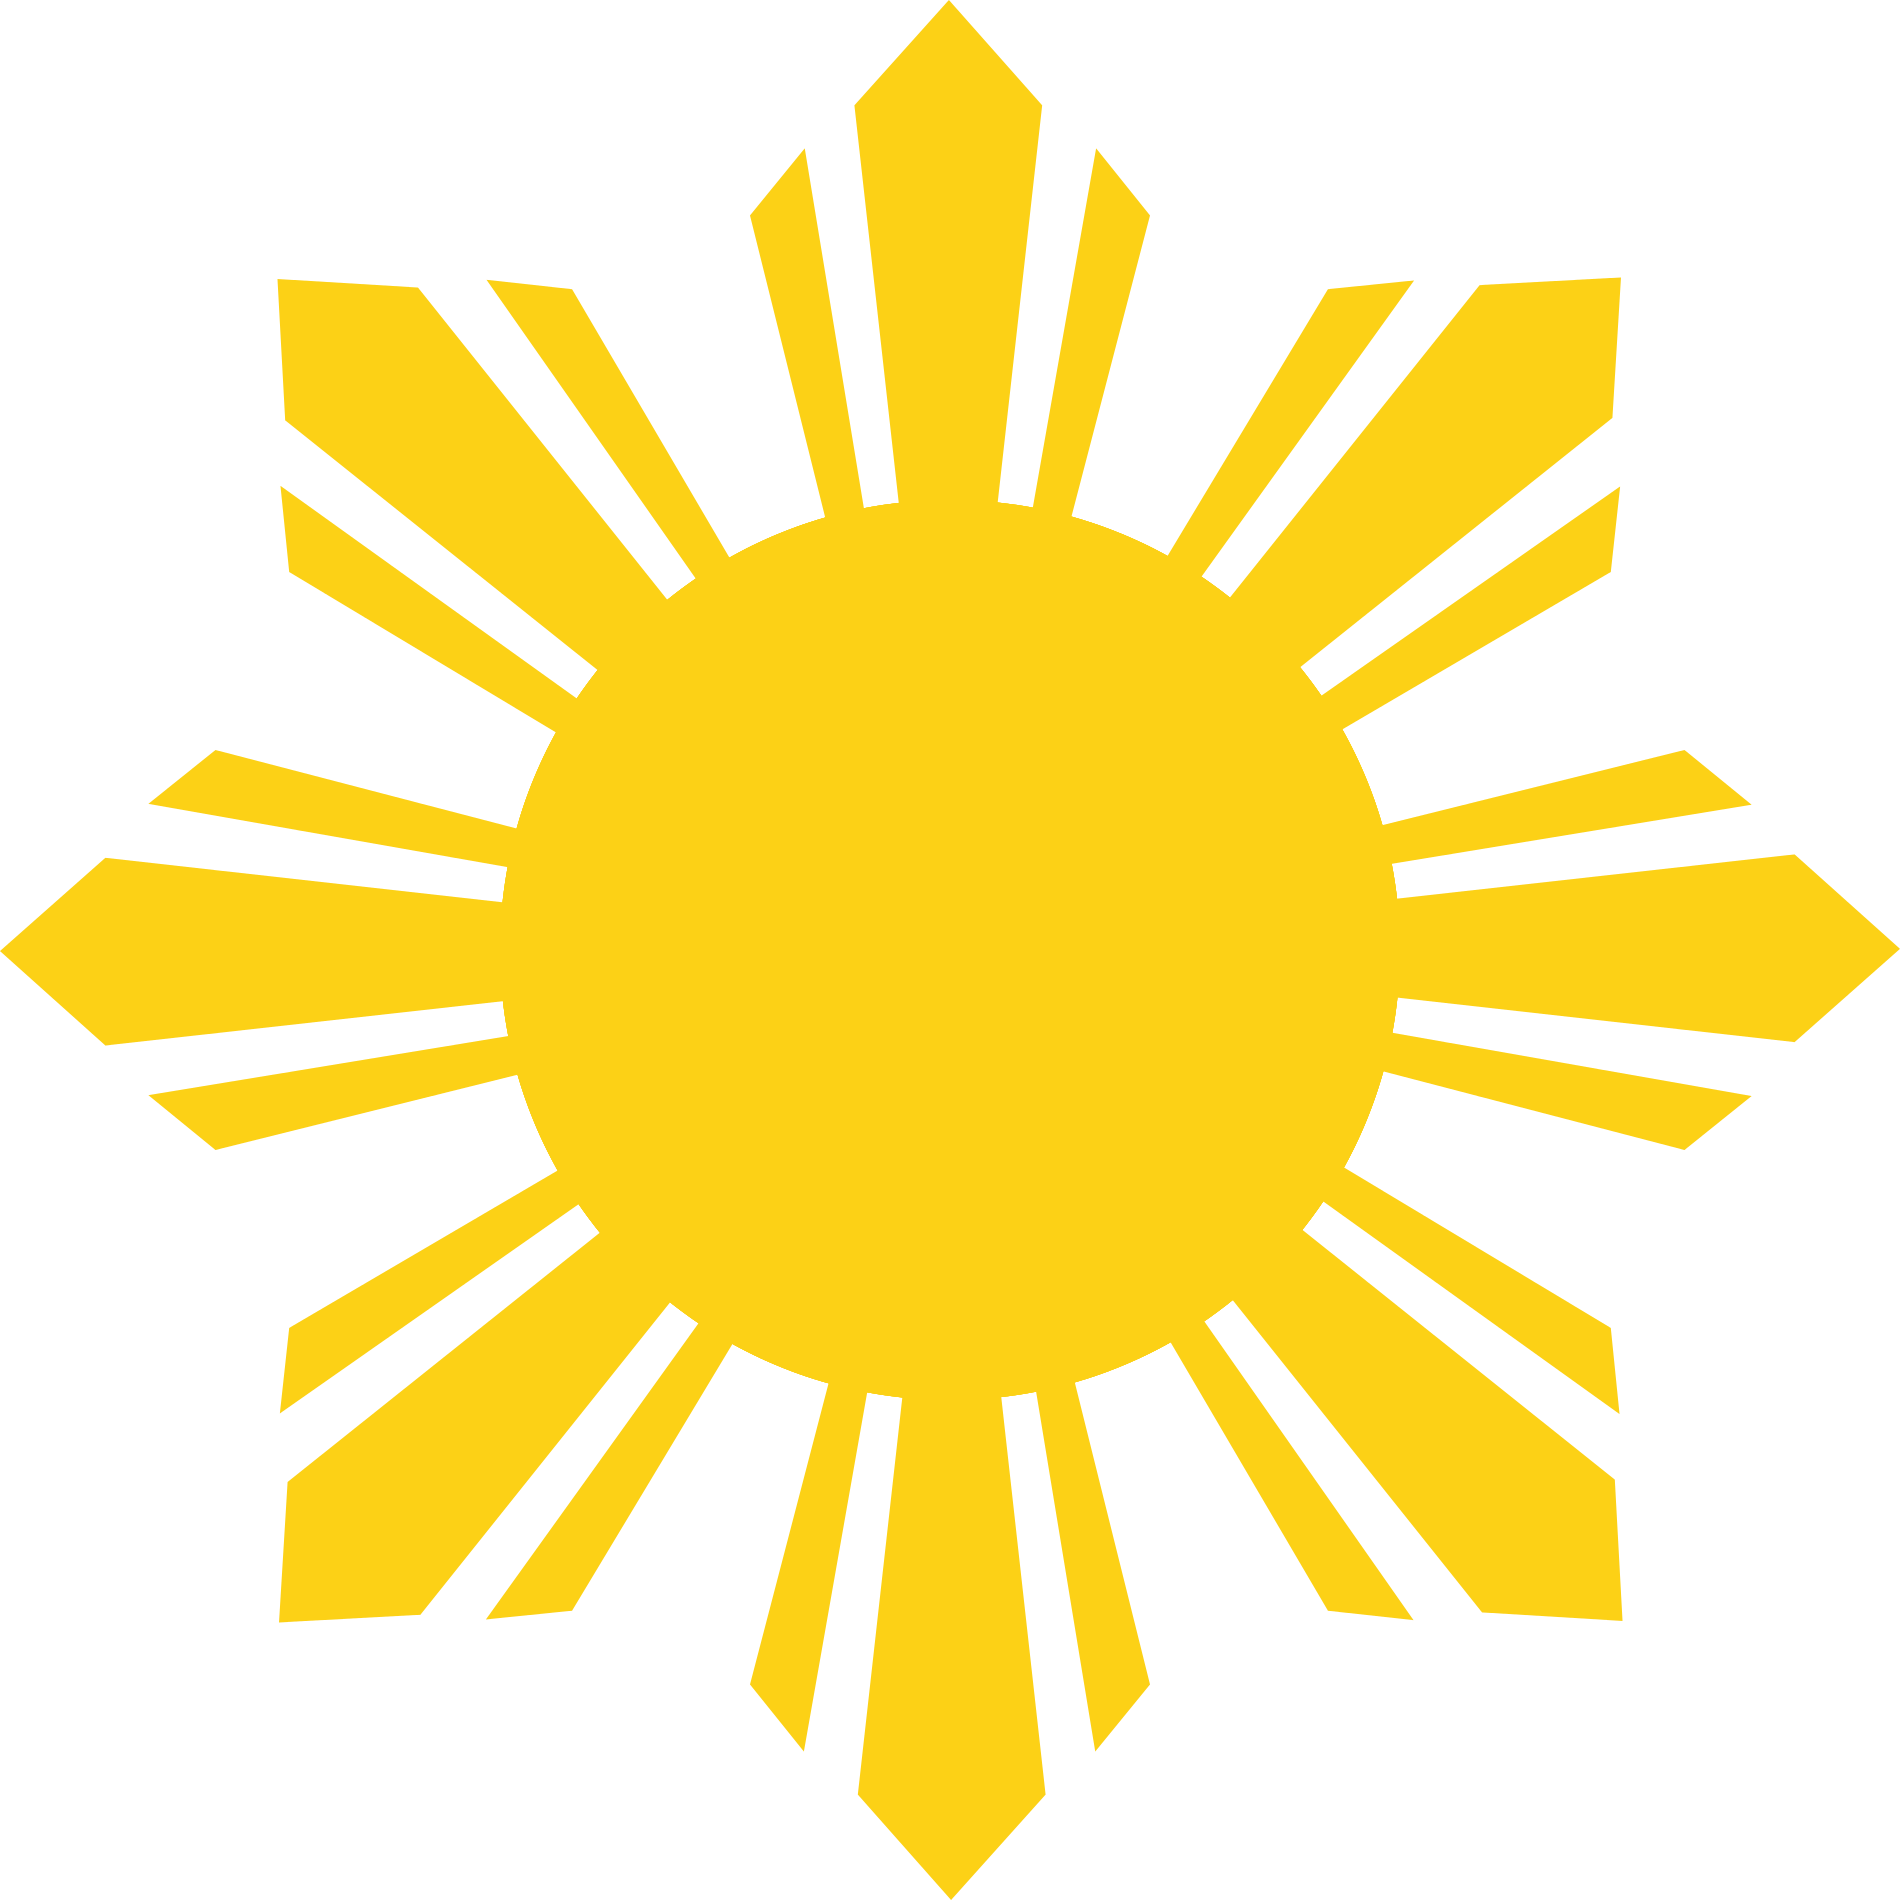 Philippines sun clipart clipart free download File:Flag of the Philippines - cropped sun.svg - Wikimedia Commons clipart free download